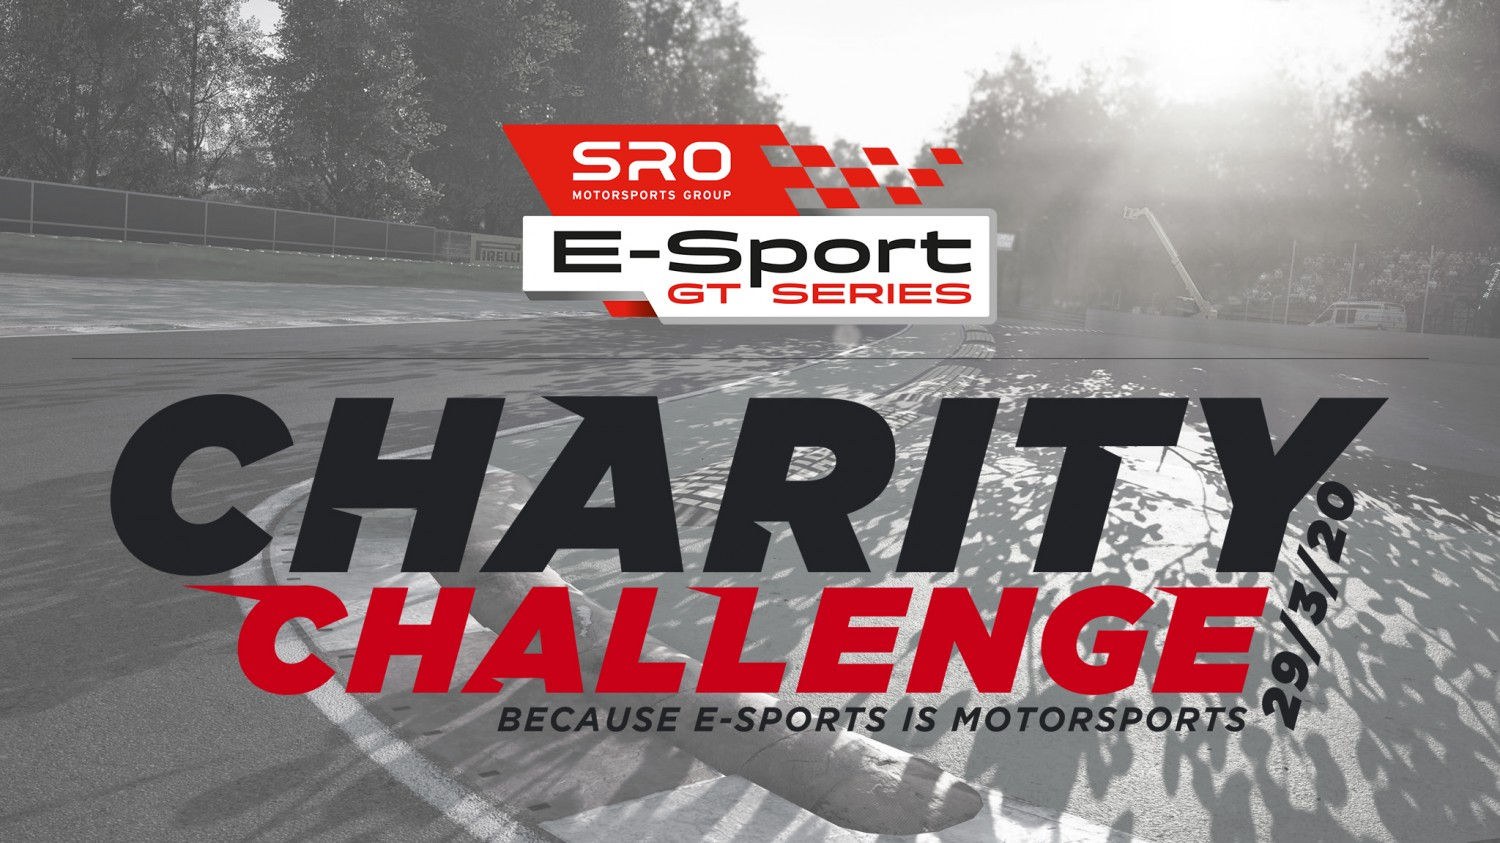 SRO E-Sports GT Series, Kunos Simulazioni and Ak Informatica to stage two-hour Assetto Corsa Competizione race at Monza